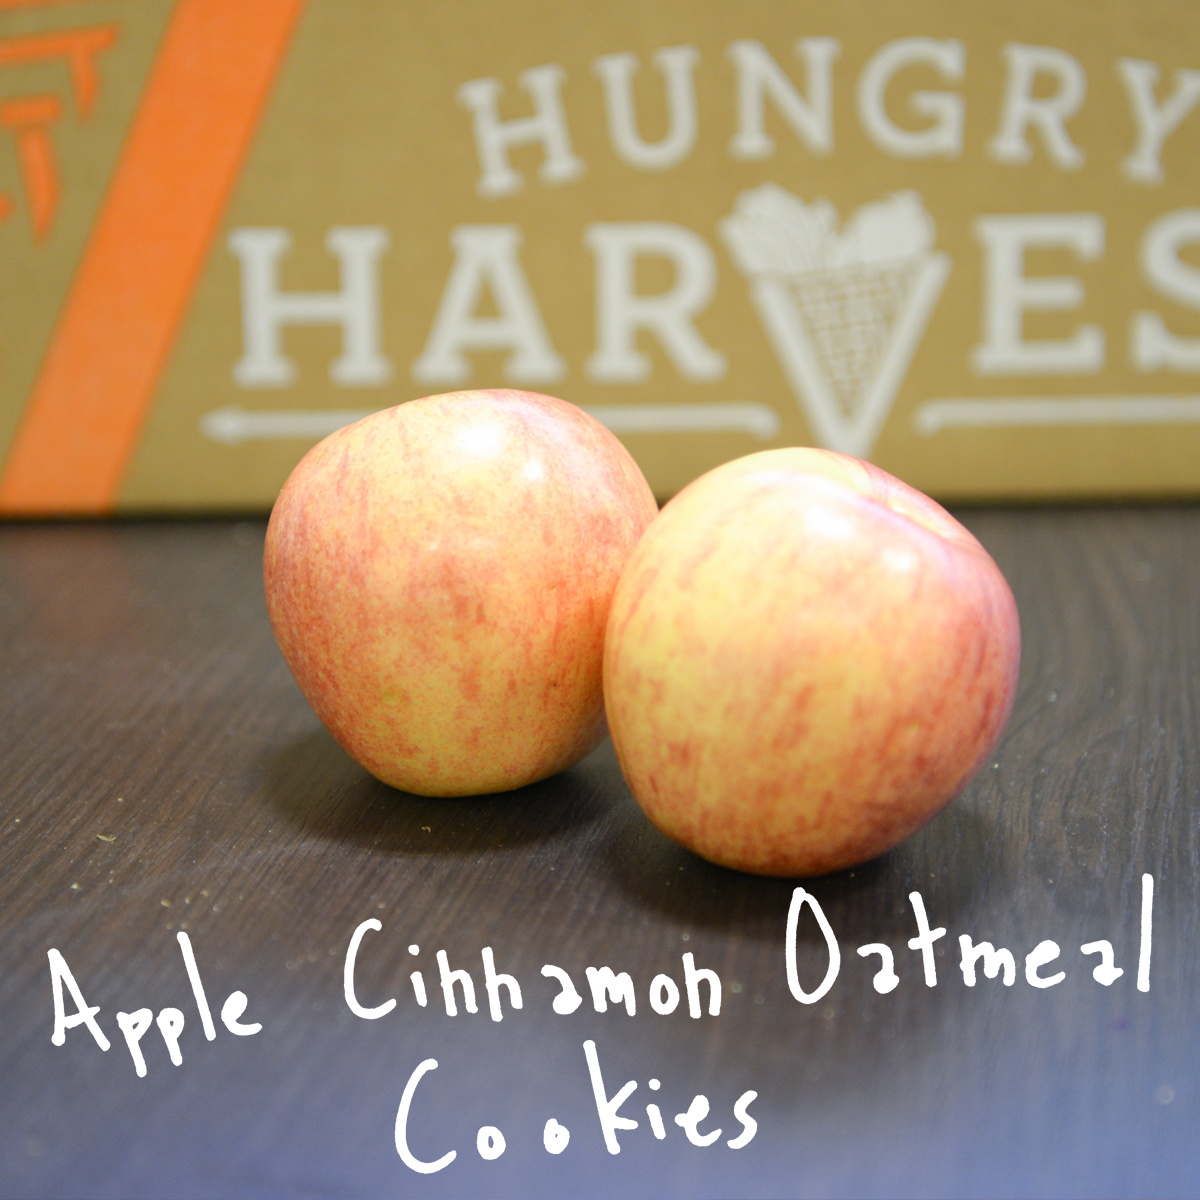 Who says apples are just for pies? These yummy Apple Cinnamon Oatmeal Cookies are a perfect treat and make your house smell wonderful. - Find the recipe at: Sally's Baking Addiction